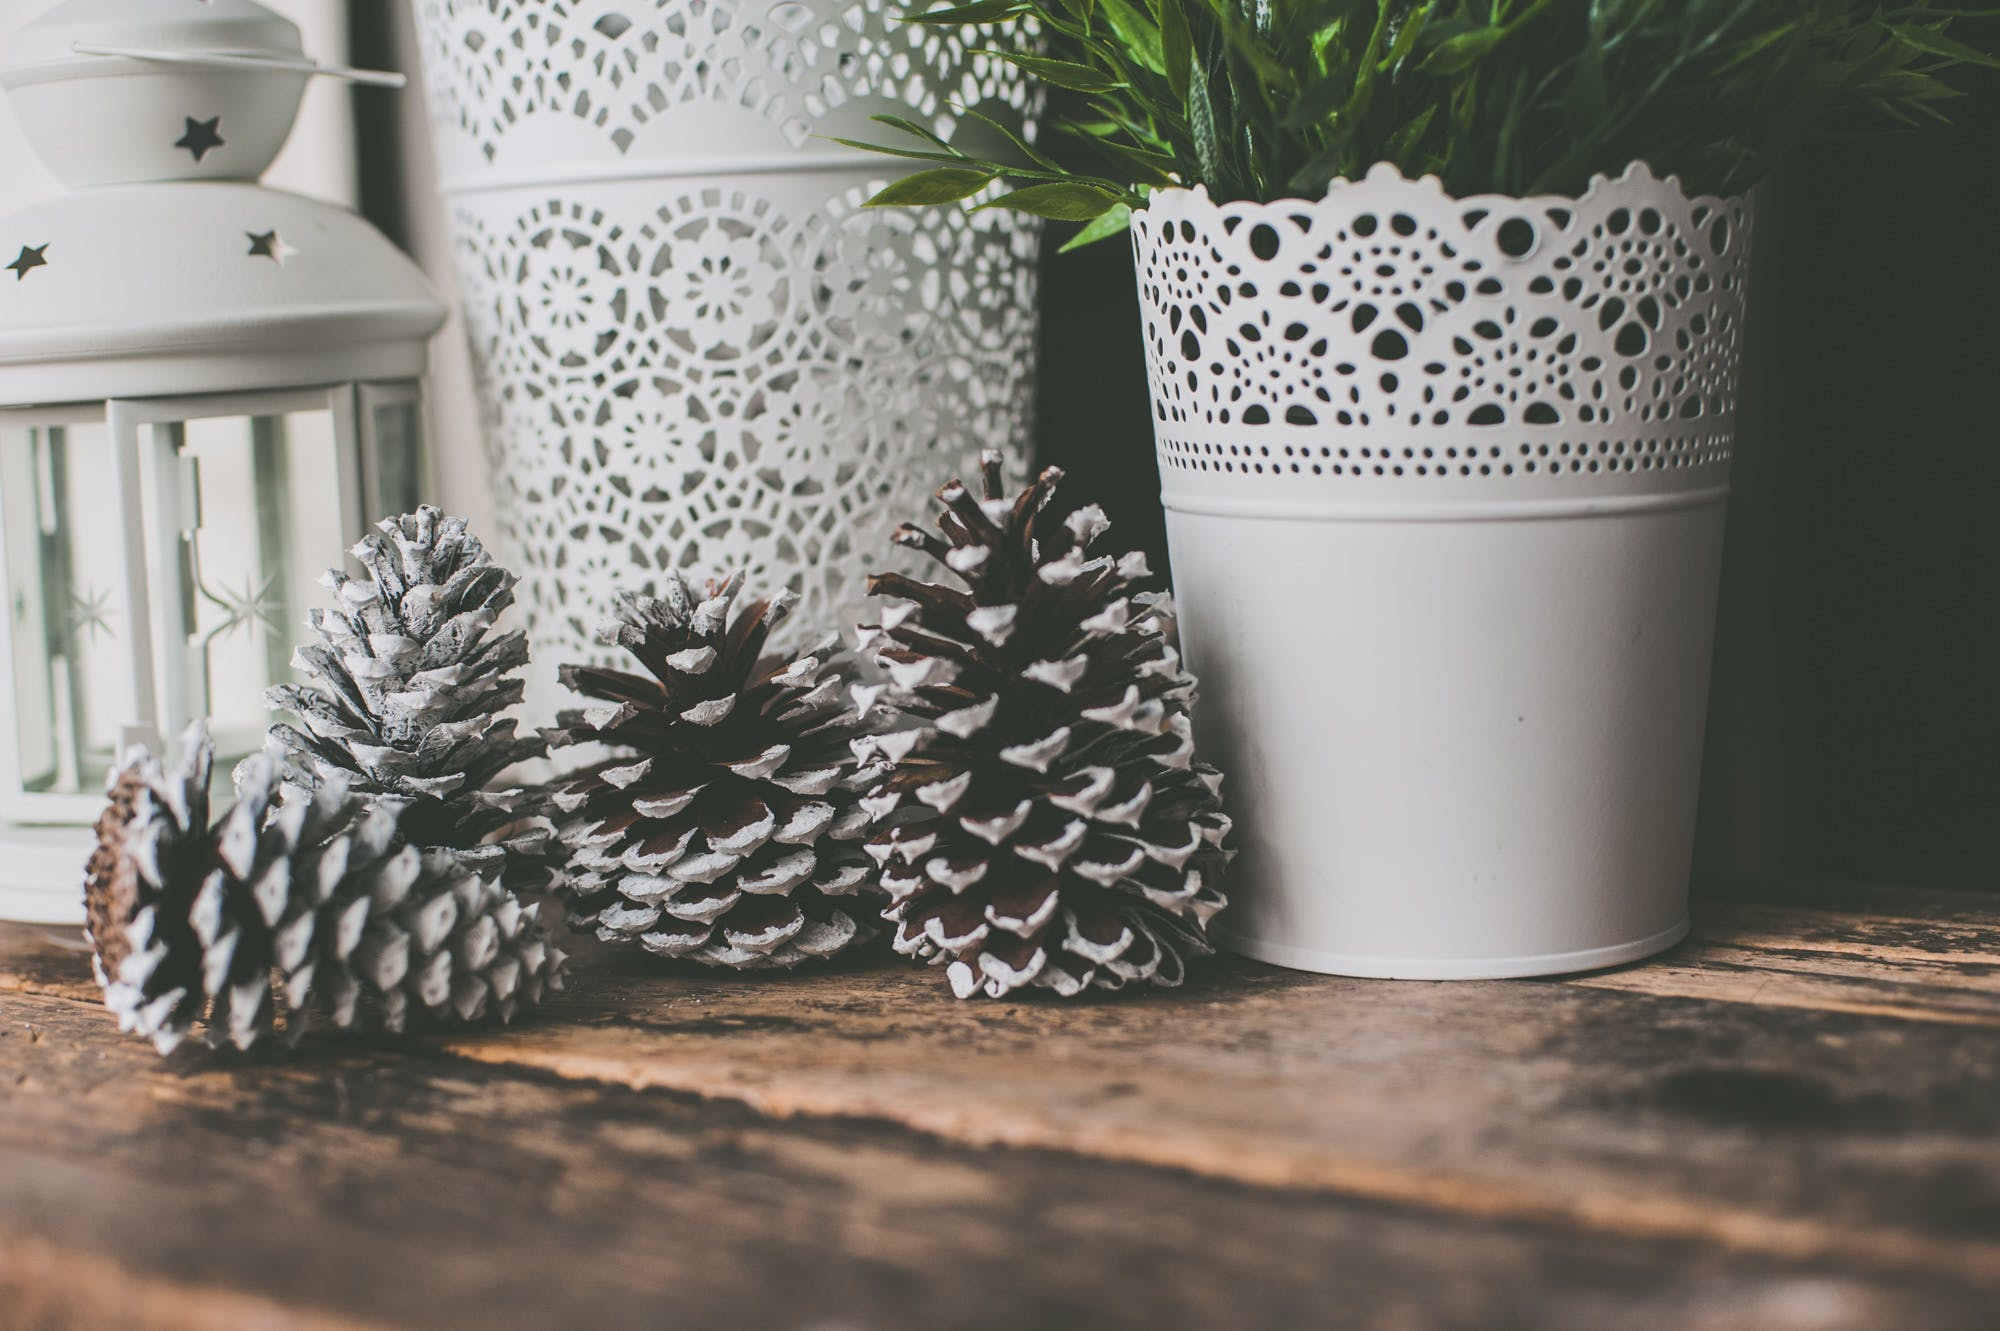 Photo of Pine Cones Near White Vase